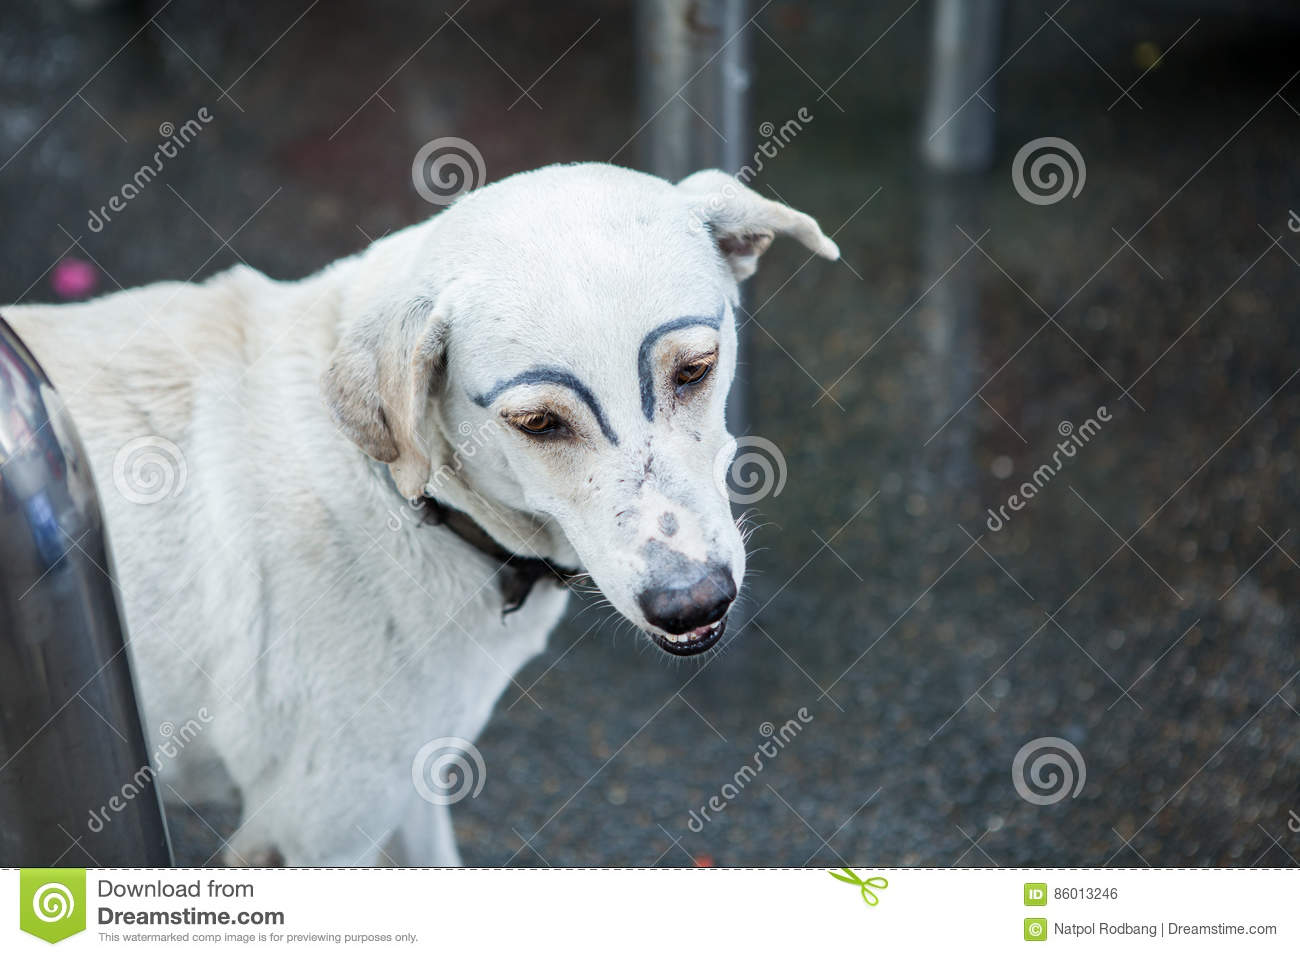 White Dog Was Faking Draw Eyebrows Stock Photo Image Of Street